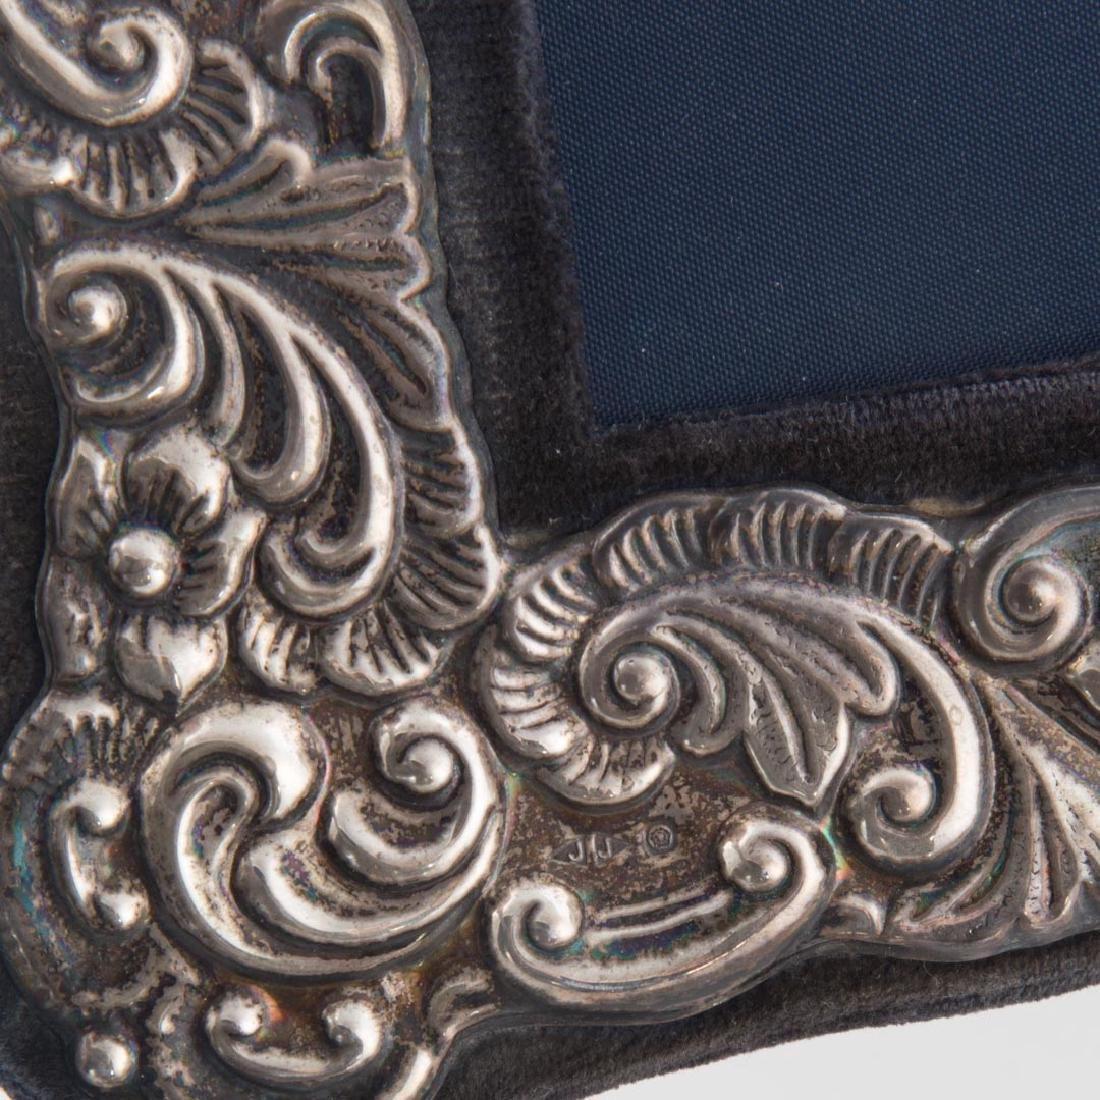 Pair of repousse sterling 5 x 7 picture frames - 5